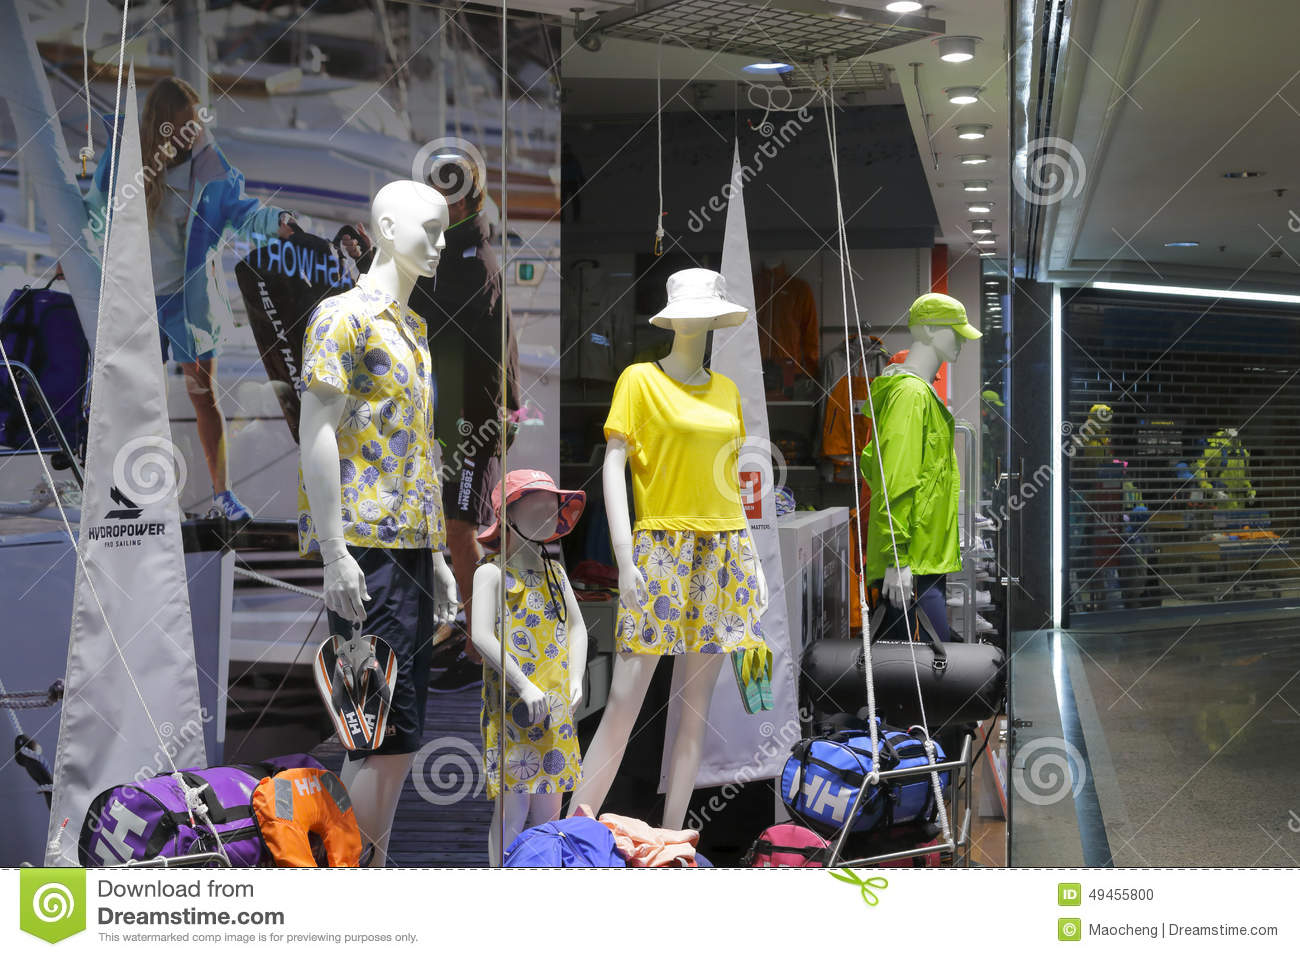 Casual clothing stores